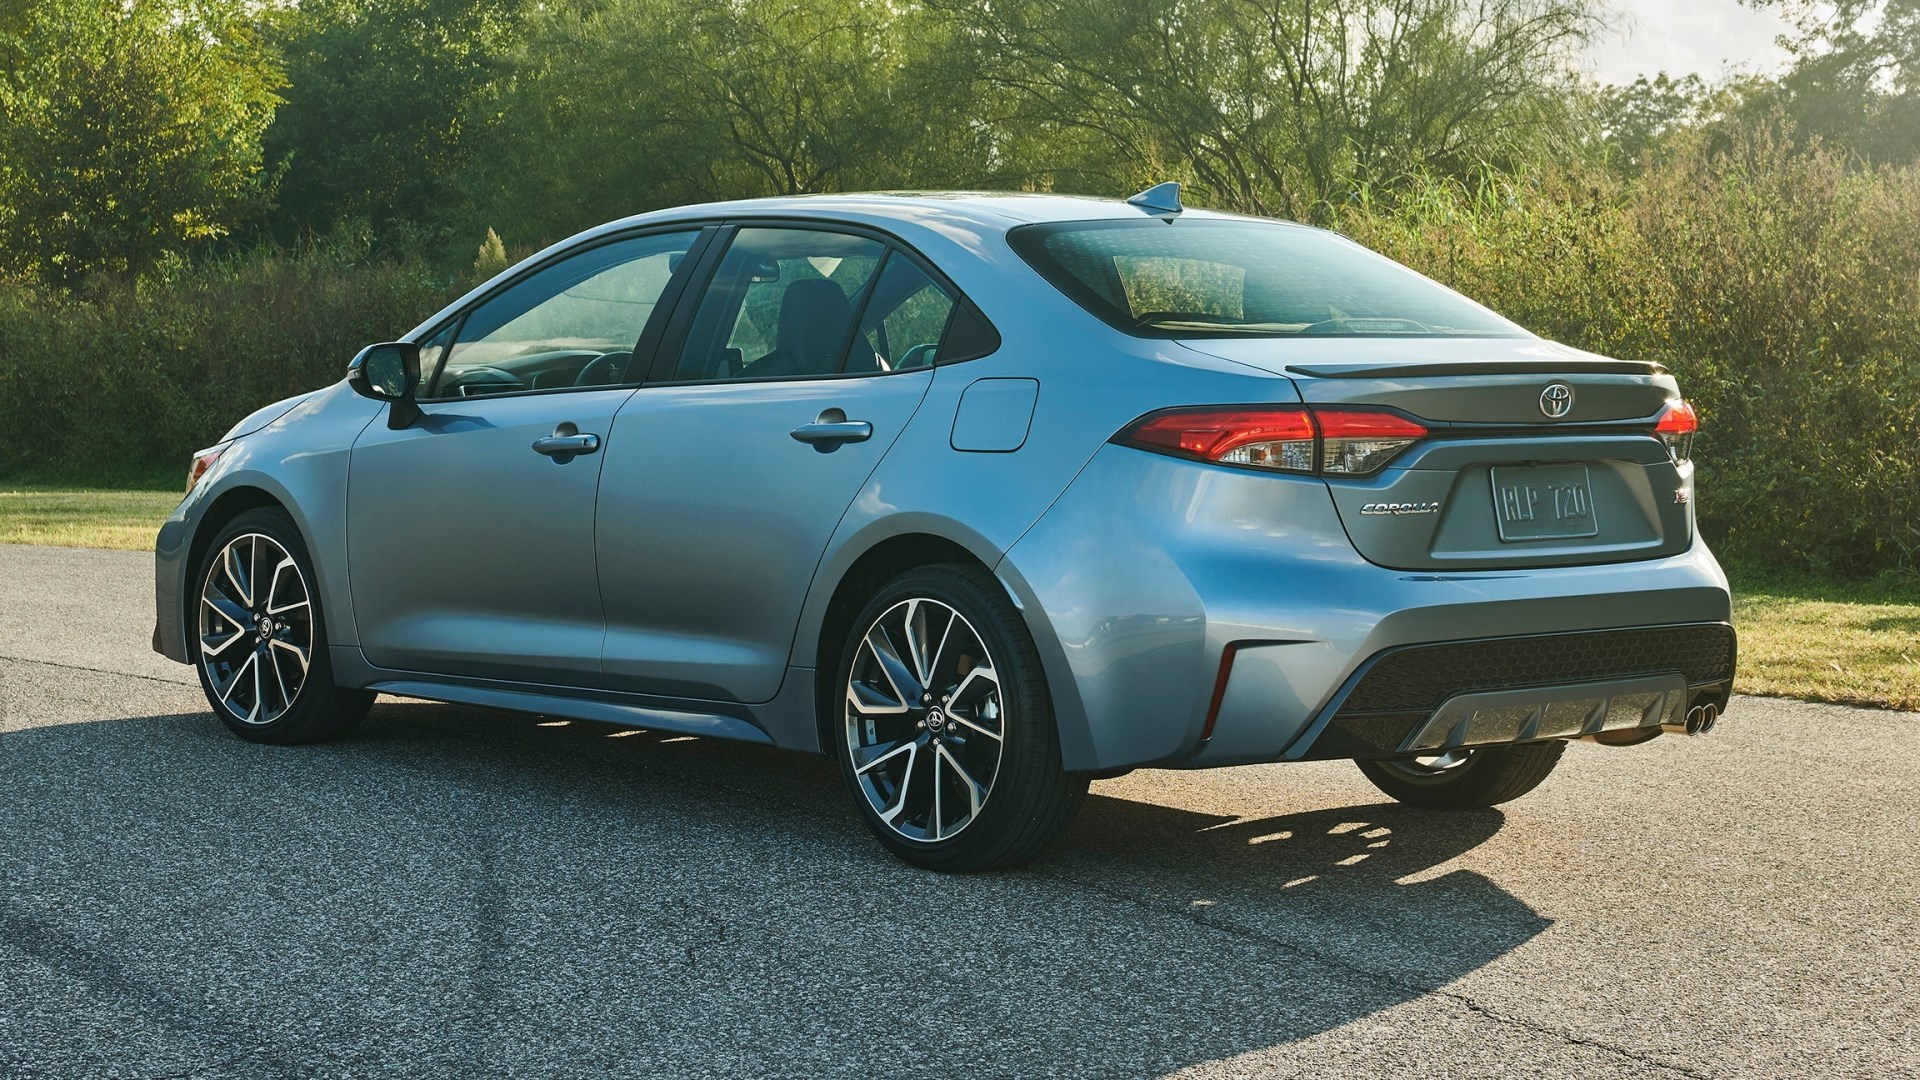 2020 Toyota Corolla Sedan Revealed – Here Q4 2019 Thumbnail